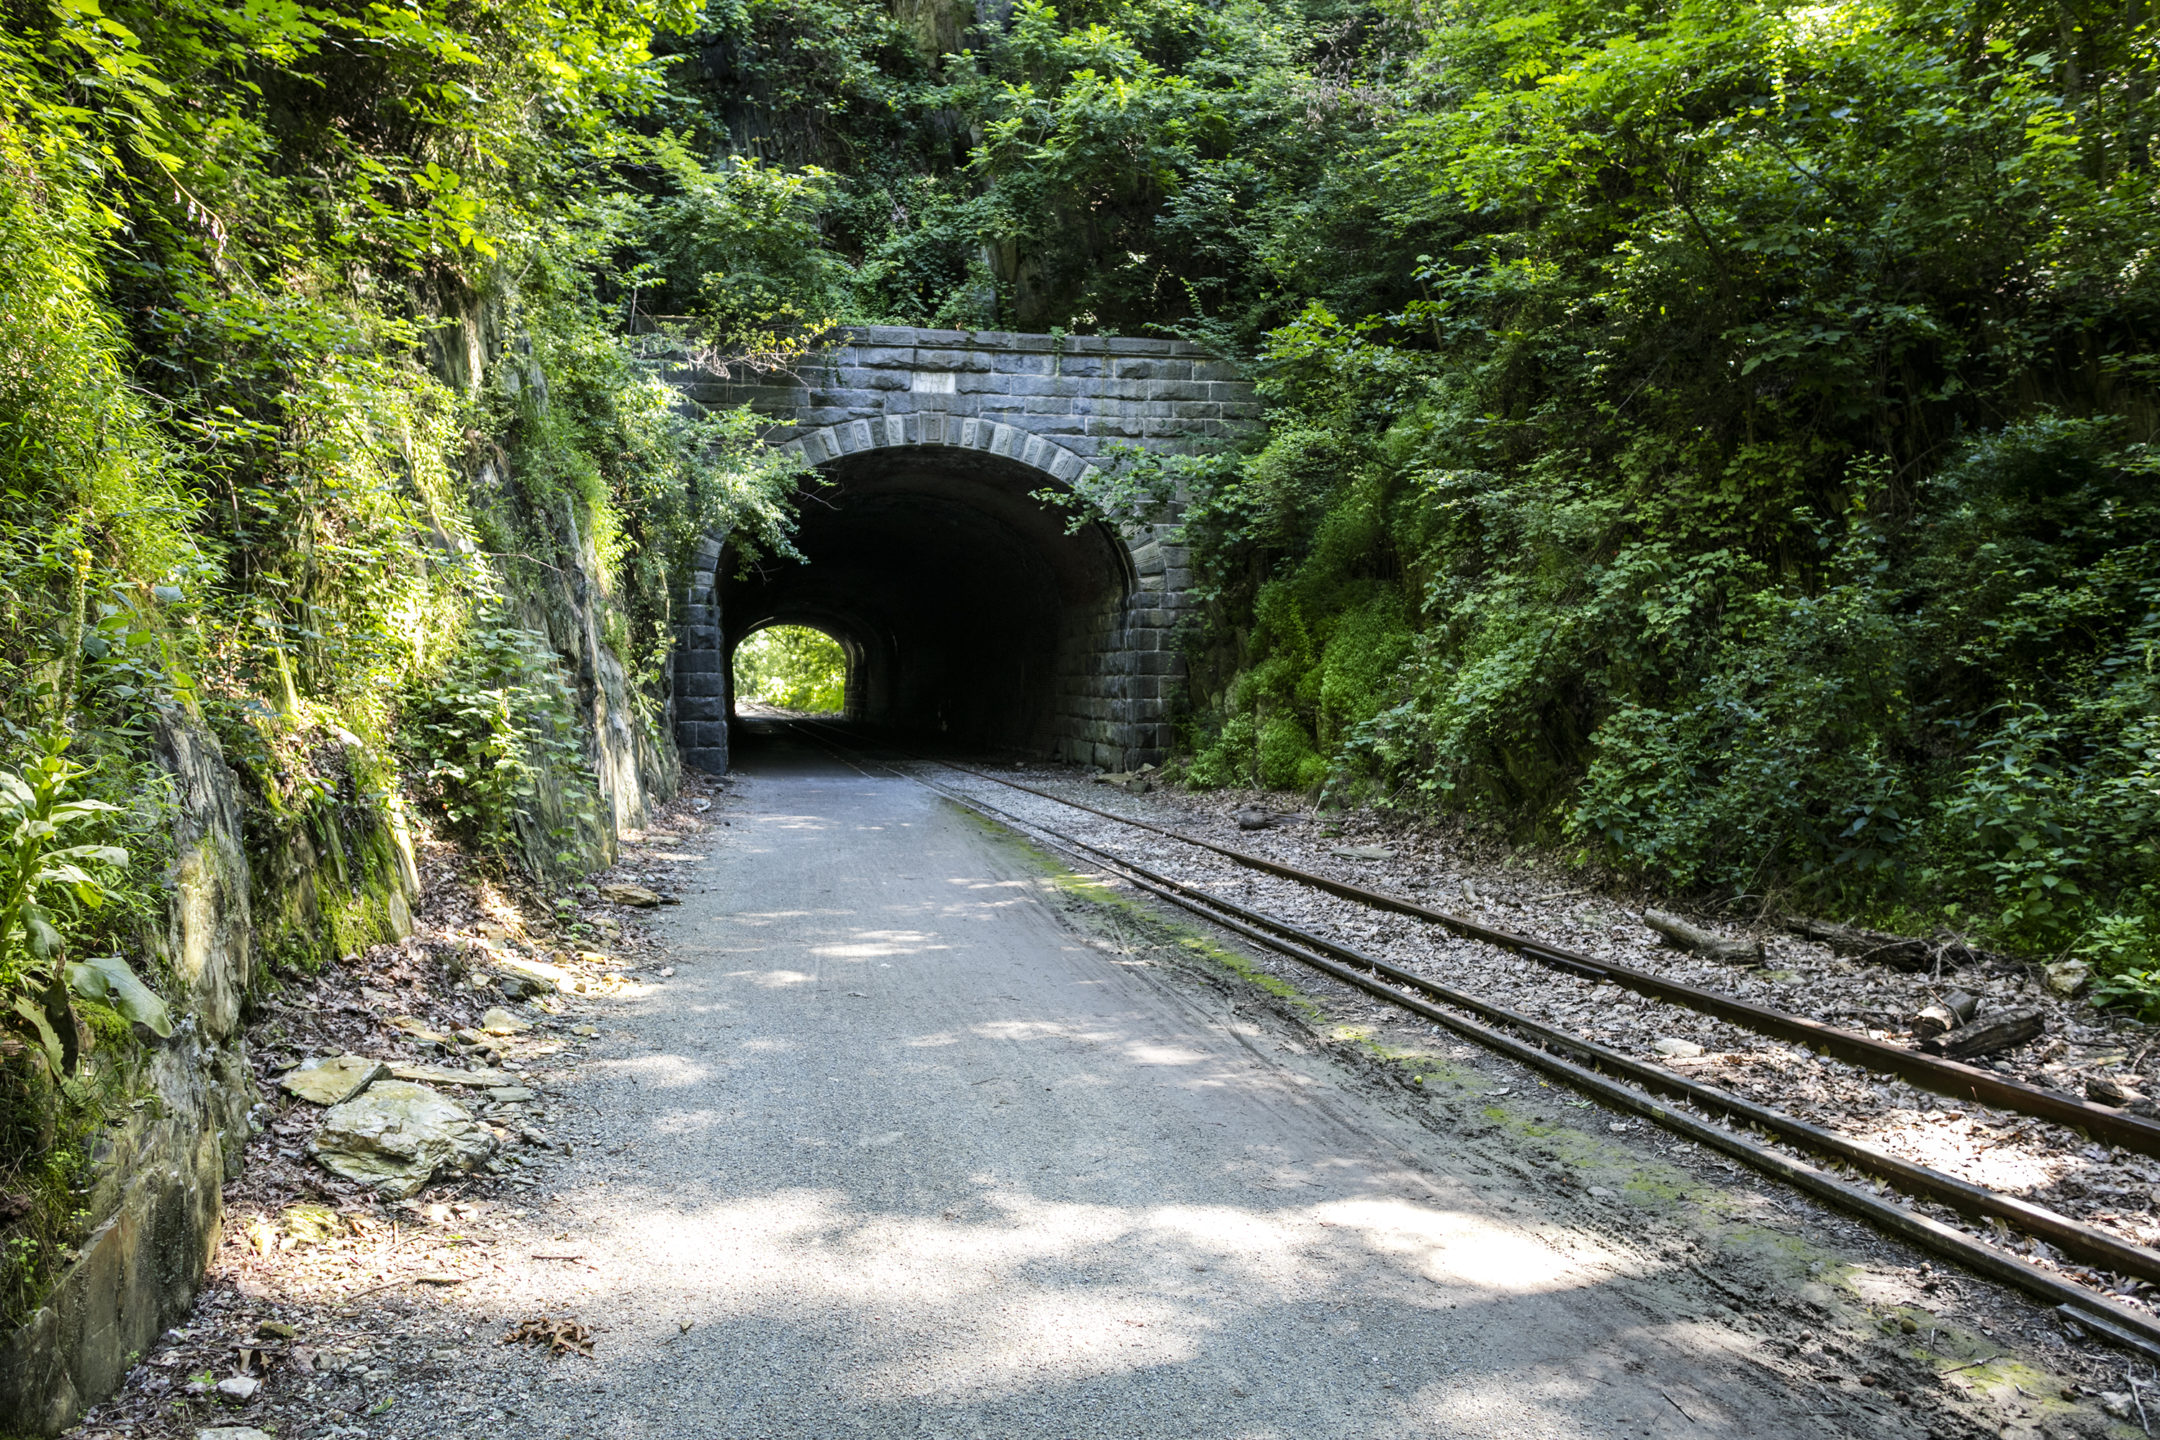 the Howard tunnel entrance surrounded by greenery